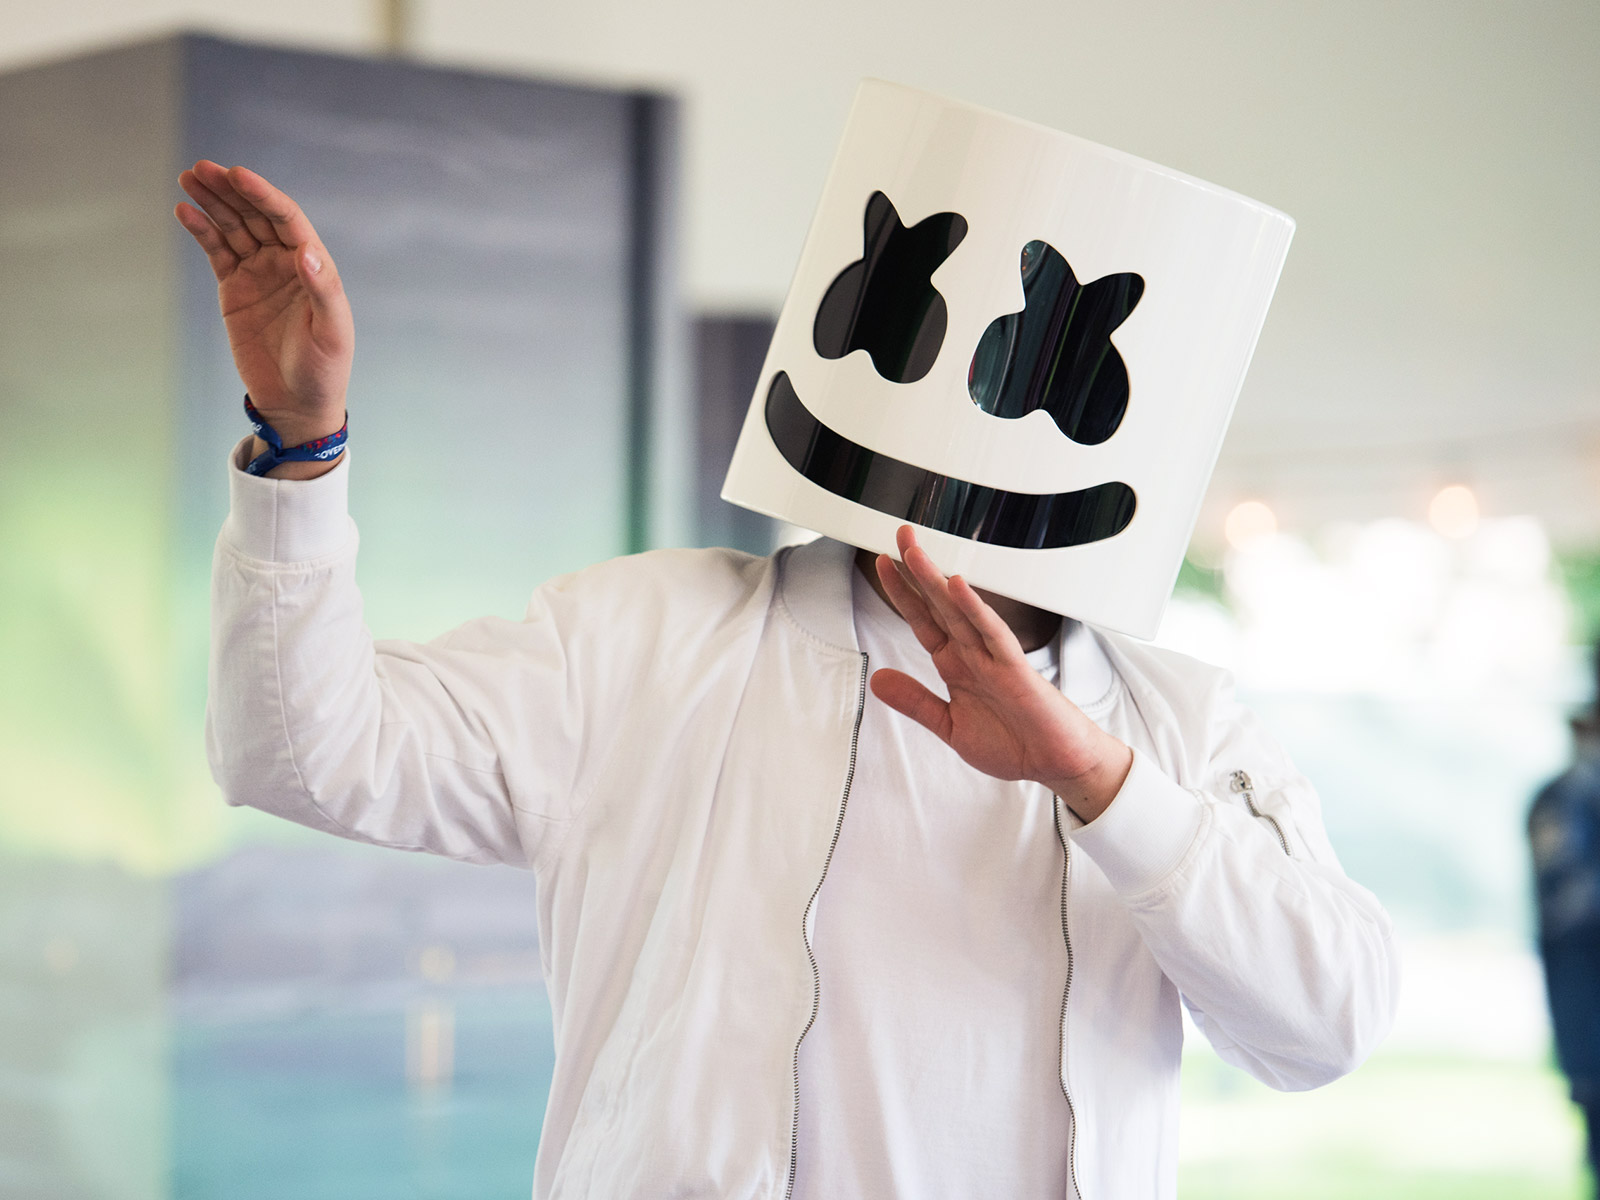 Electronic Music DJ Marshmello Has His Own Cooking Show on YouTube